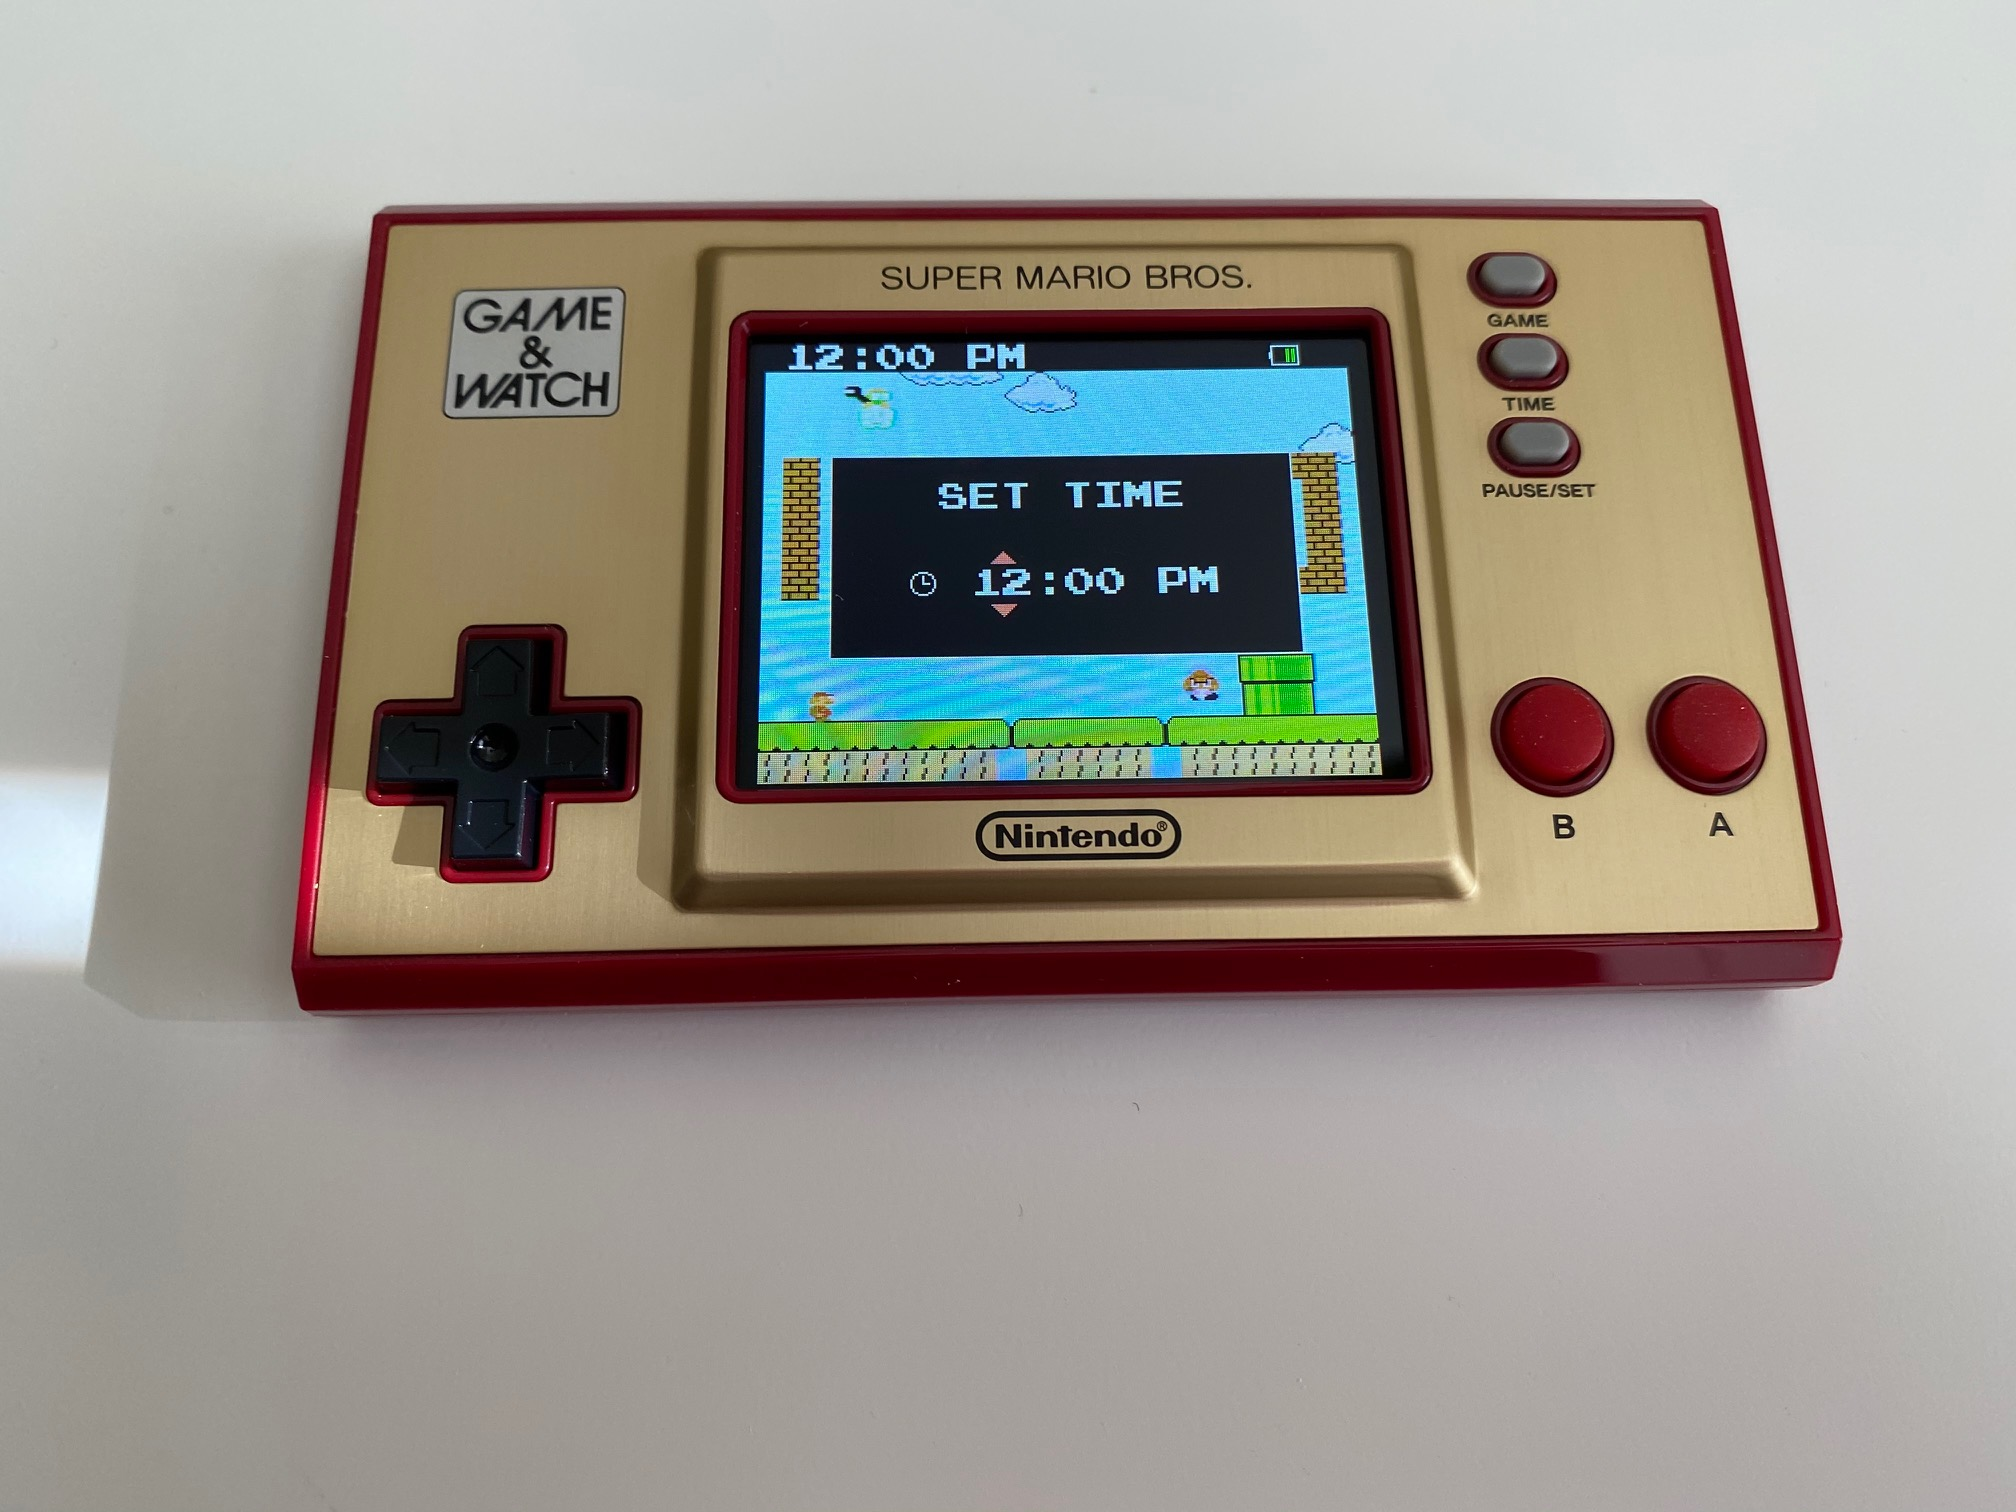 Nintendo's Game & Watch: Super Mario Bros. device is a collectible first and foremost screenshot